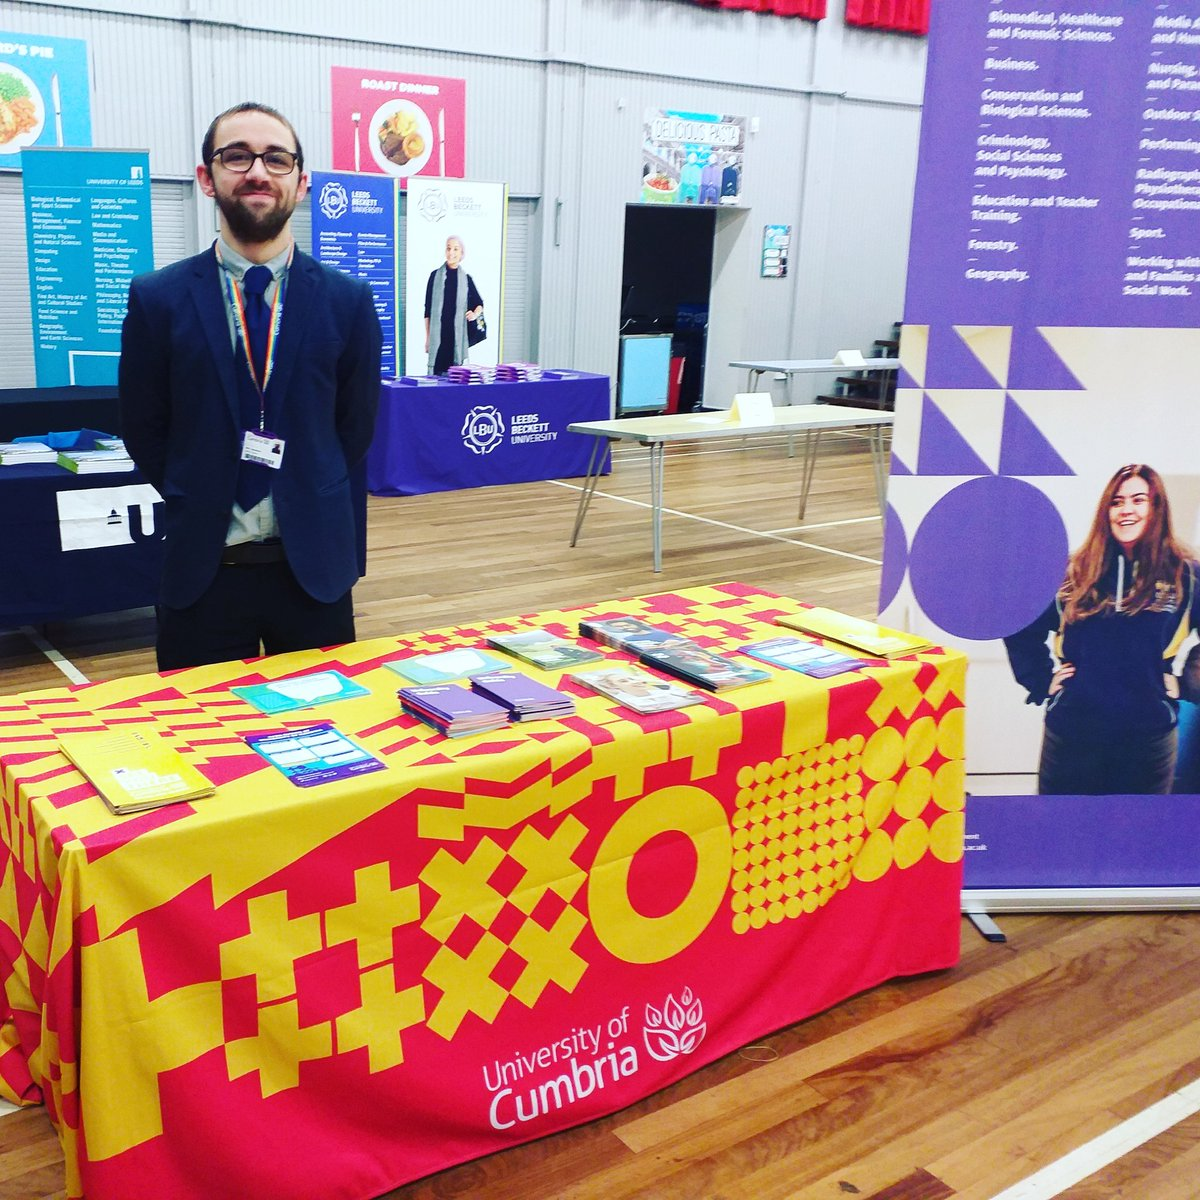 Matt and student Emily are at @KEVIMorpeth @KEVISixthForm for their #KEVIinspires event. We're looking forward to speaking to students and their families about our courses, campuses and all things @CumbriaUni #KEVIcareers #uoc #cumbria #university #seeyouthere #wevegotyou